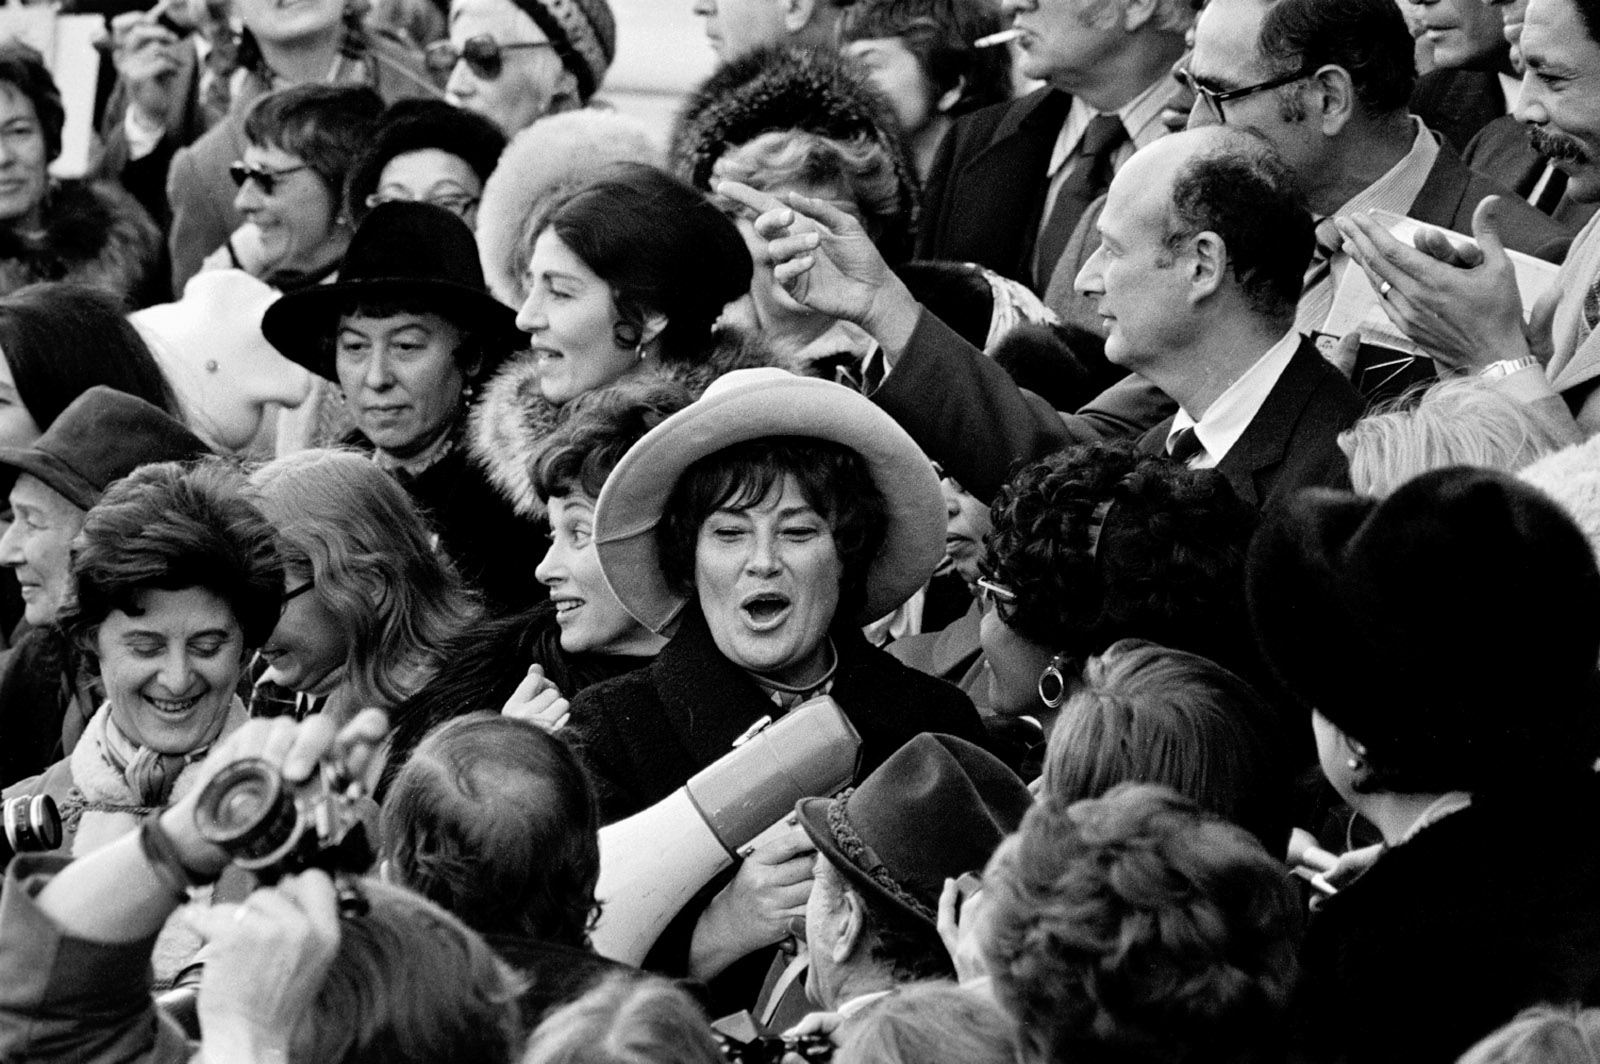 Bella Abzug protesting the Vietnam War on the steps of the Capitol after being sworn into Congress, 1971